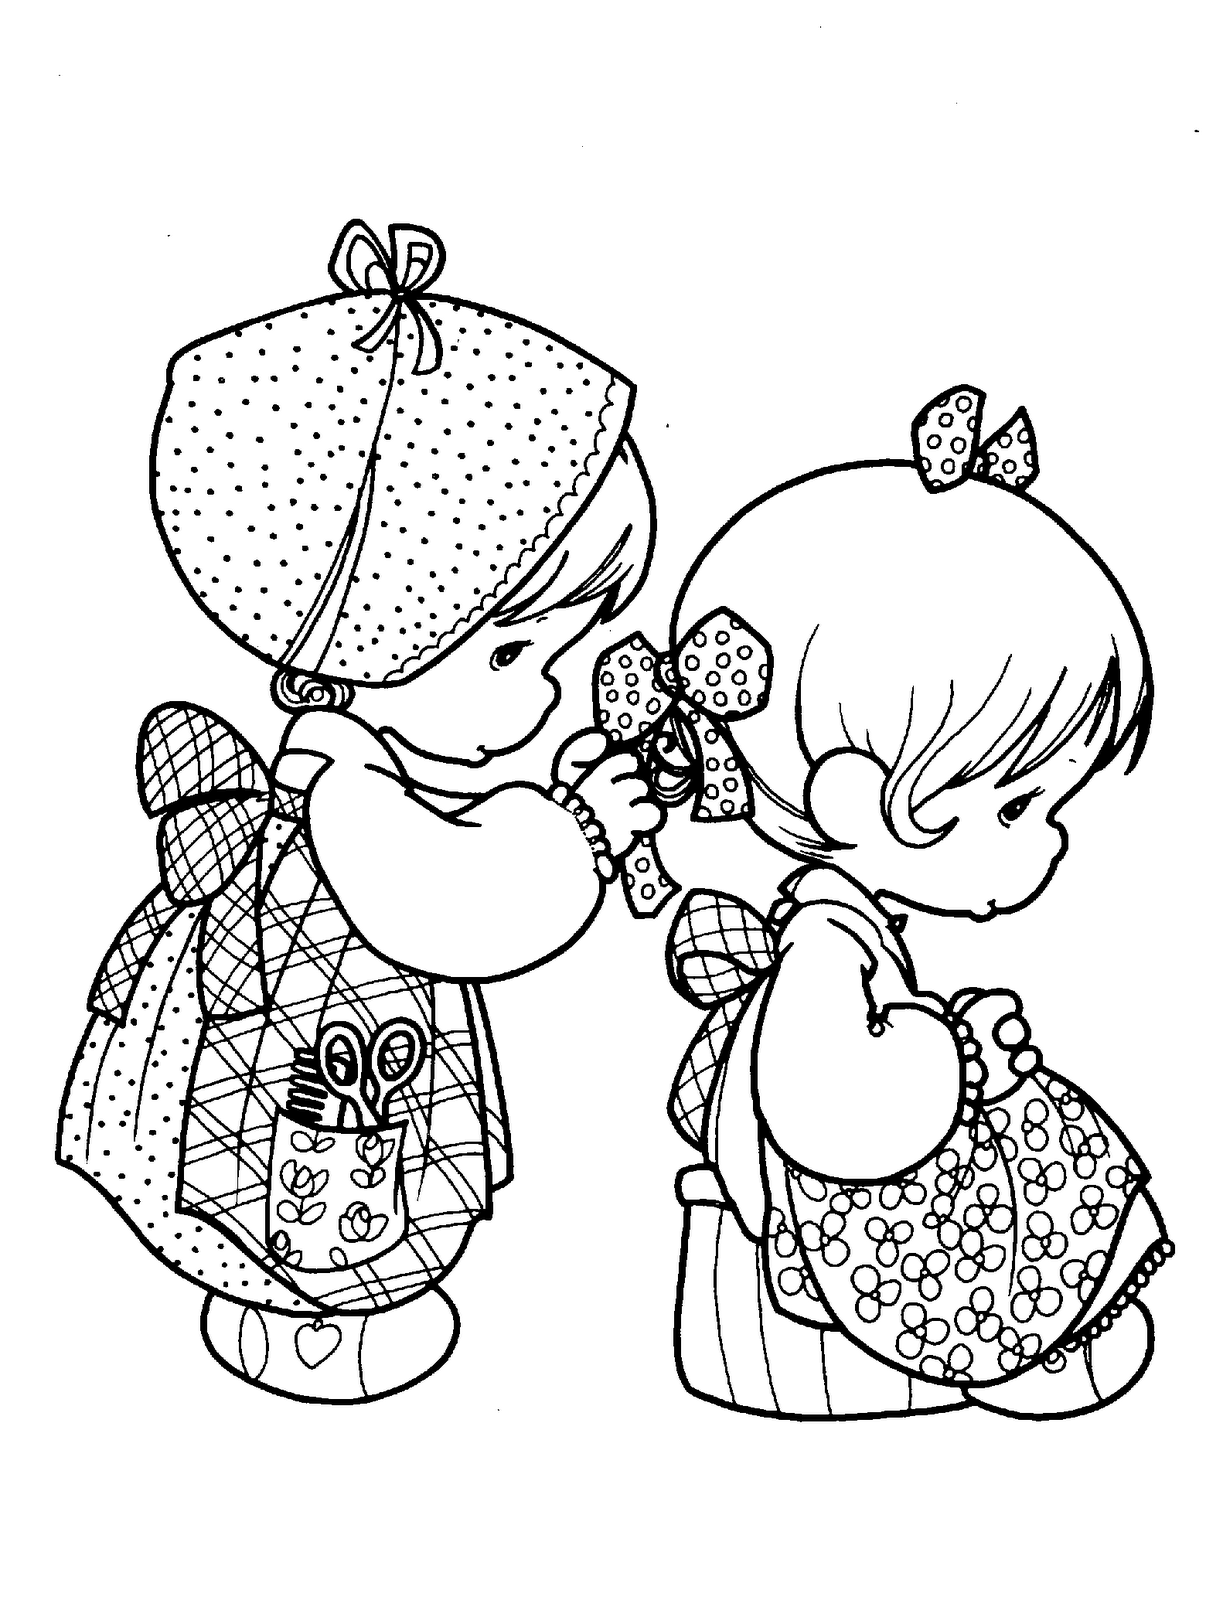 lyontarotden: Precious Moments for Love Coloring Pages